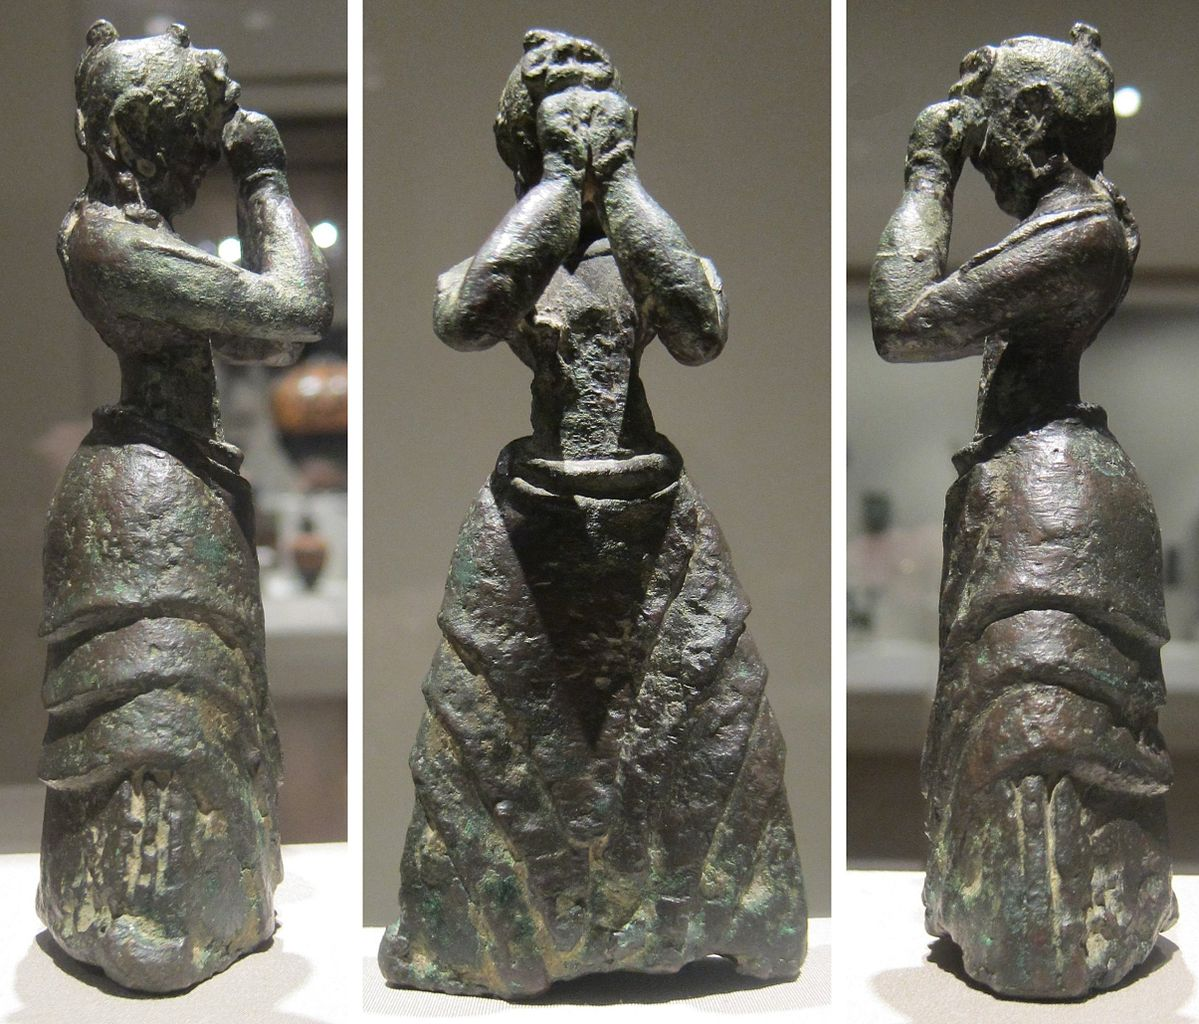 fileminoan girl c 16001500 bce bronze crete